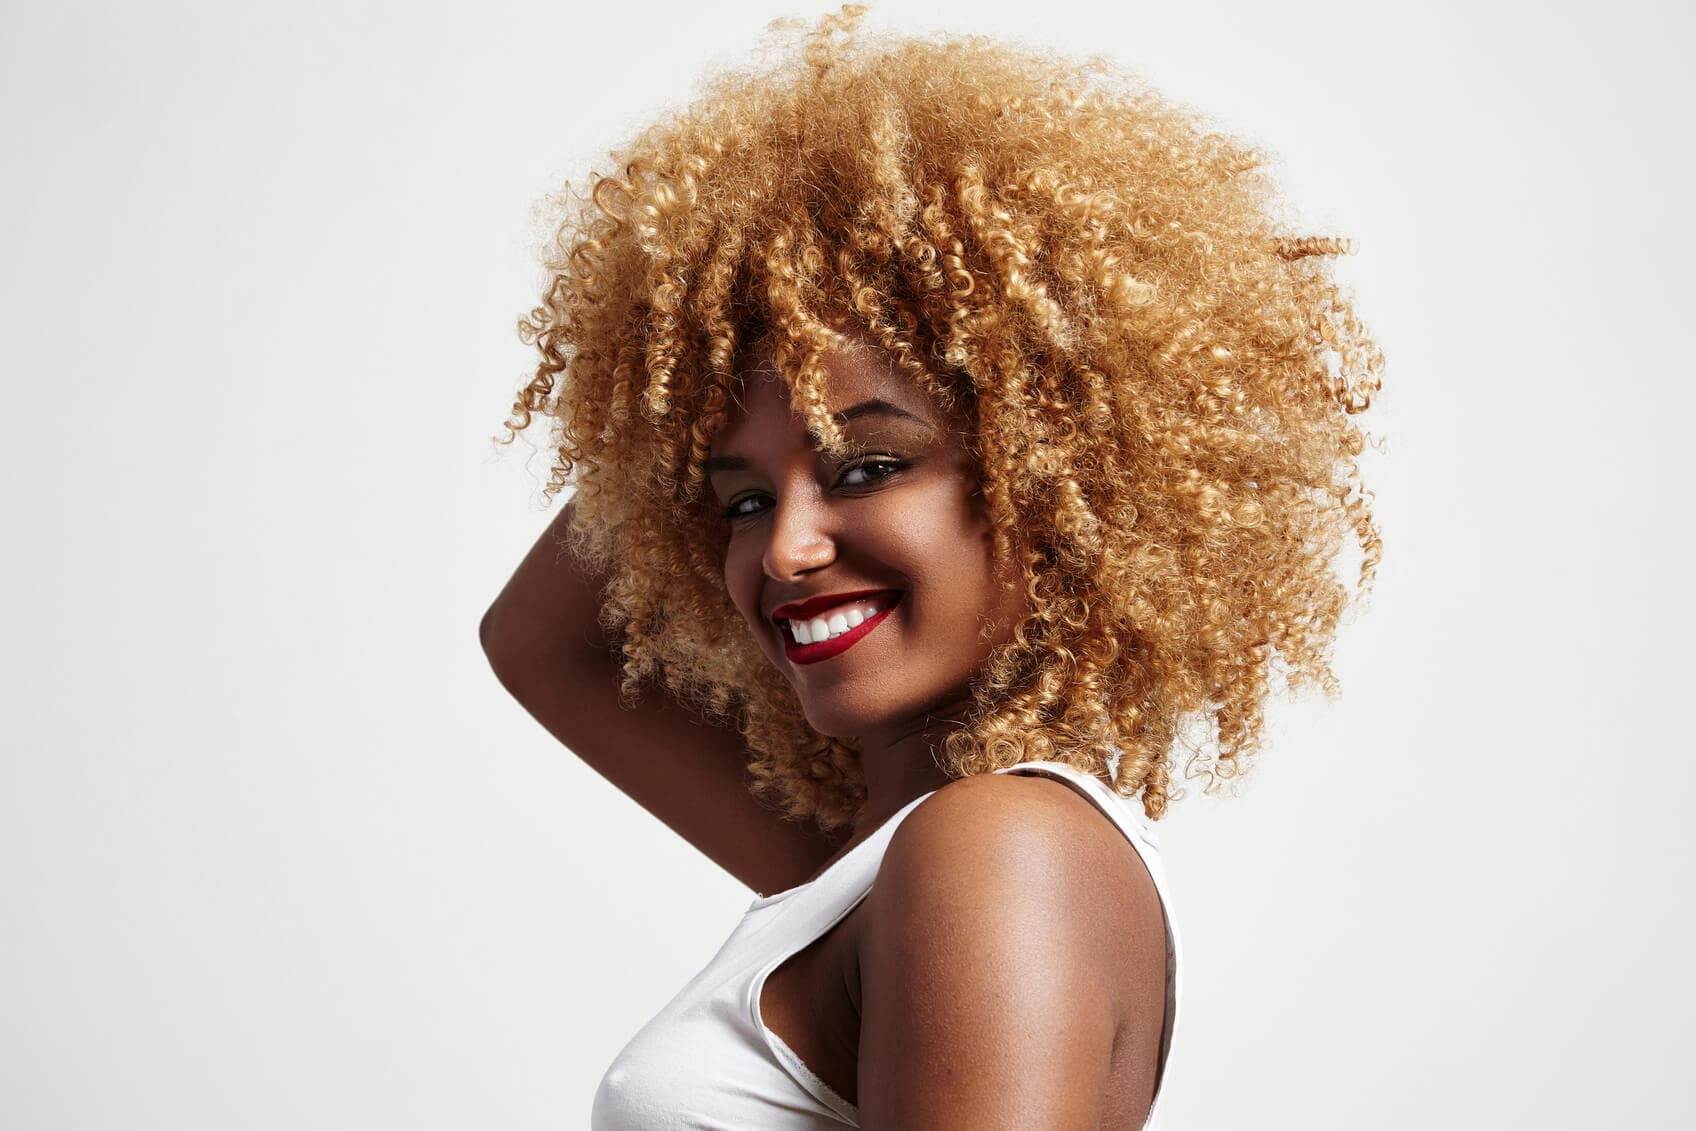 7 Blonde Afro Ideas For The Bleach Happy Curlfriend